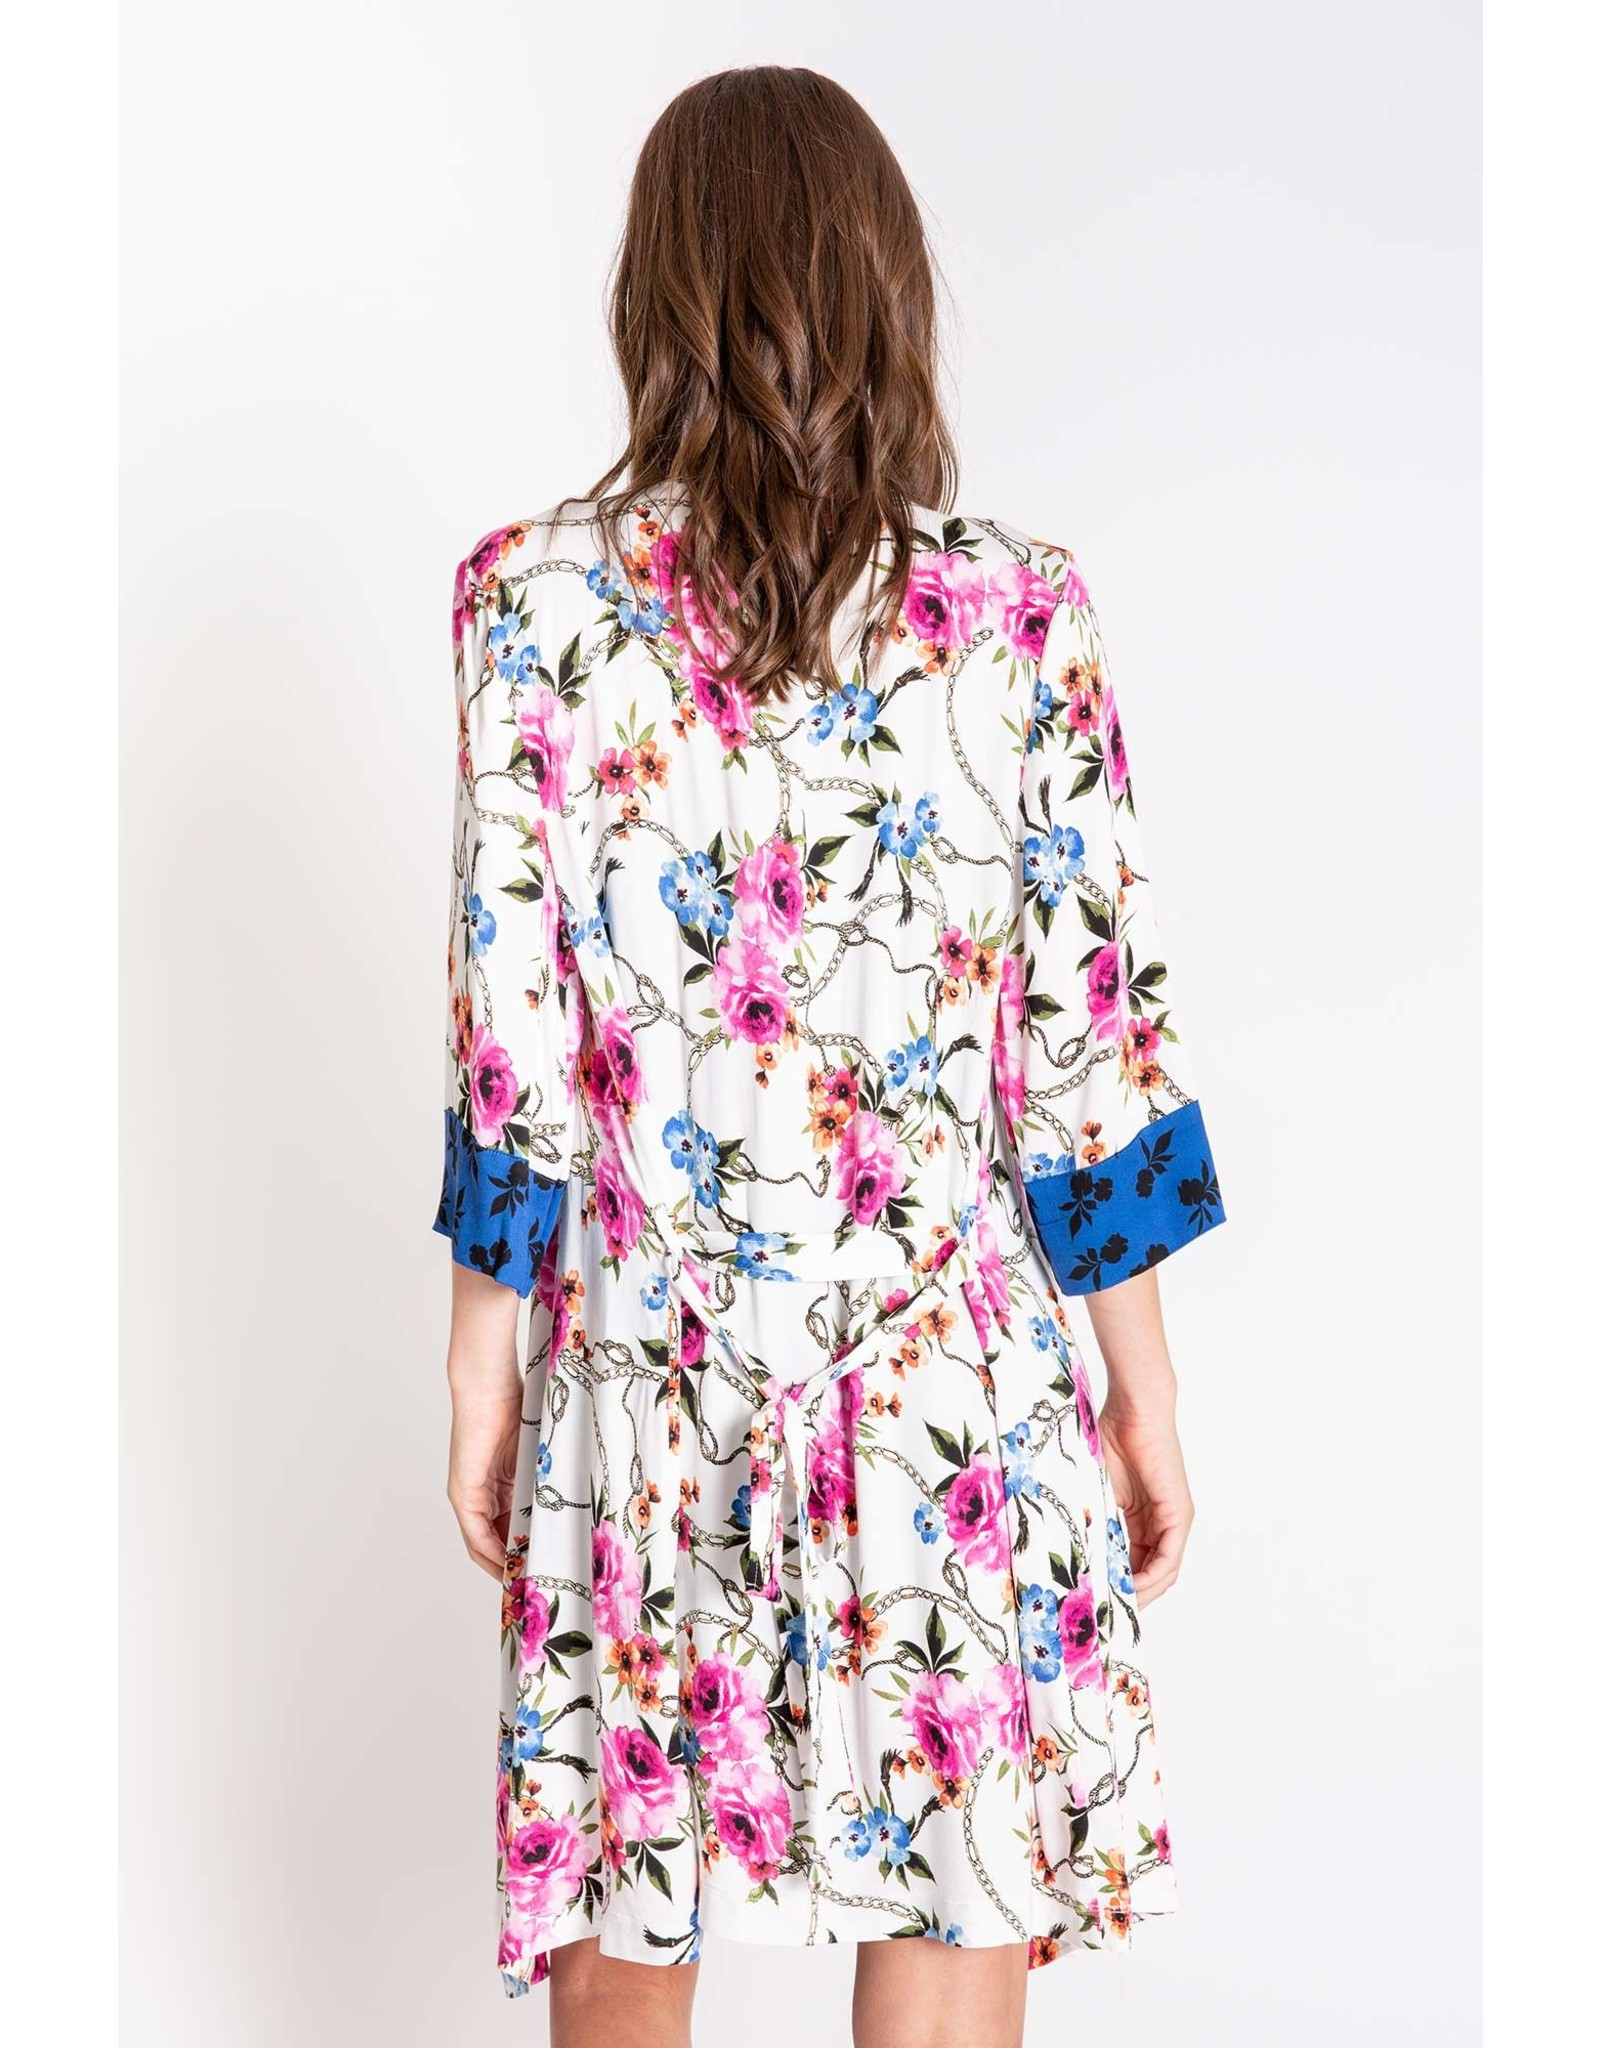 PJ Salvage PJ Salvage Love and Chains Robe - XS ONLY